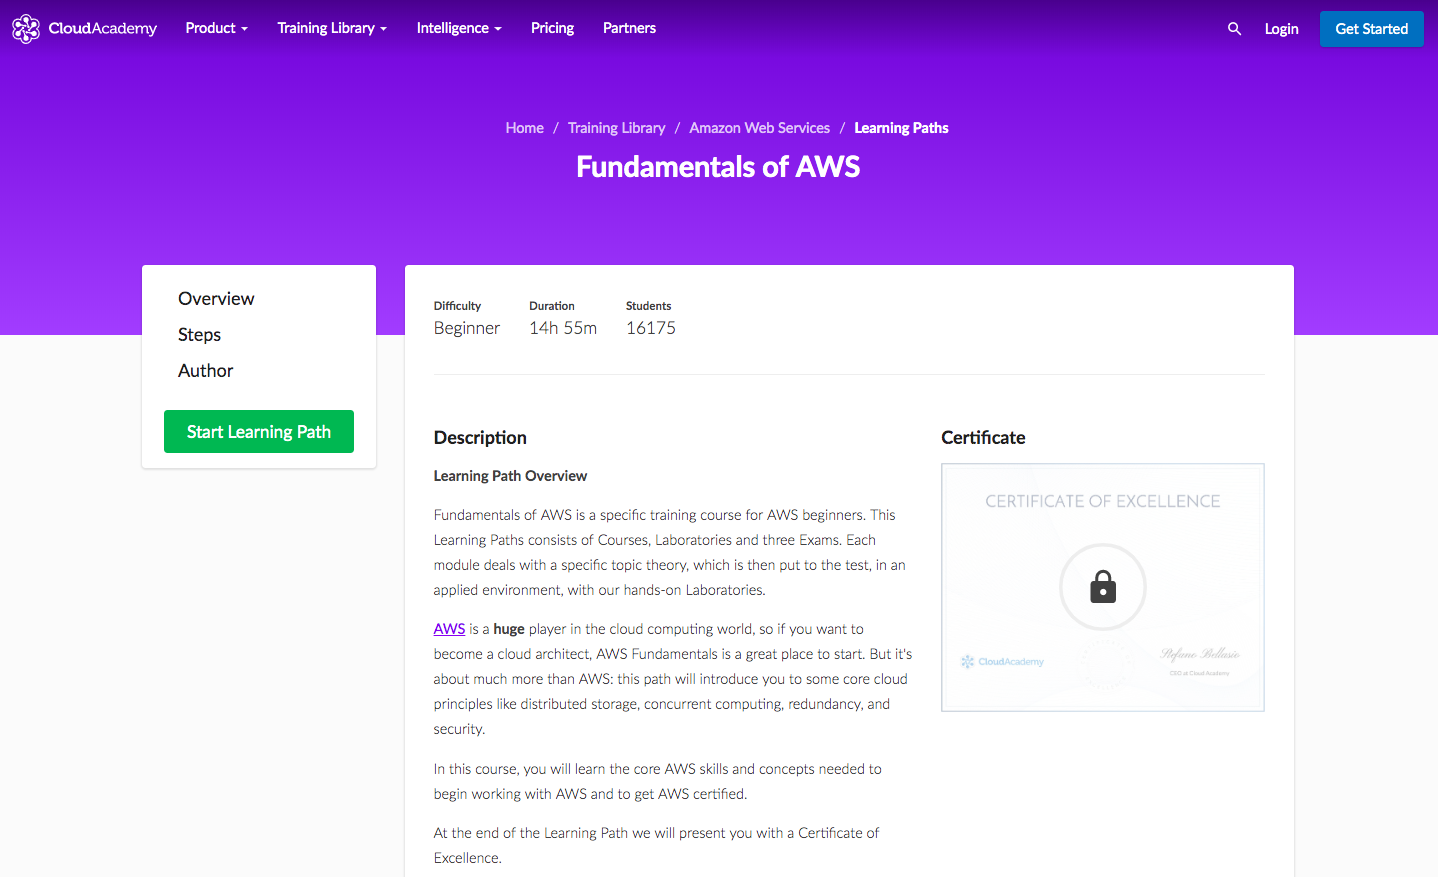 Fundamentals of AWS Learning Path